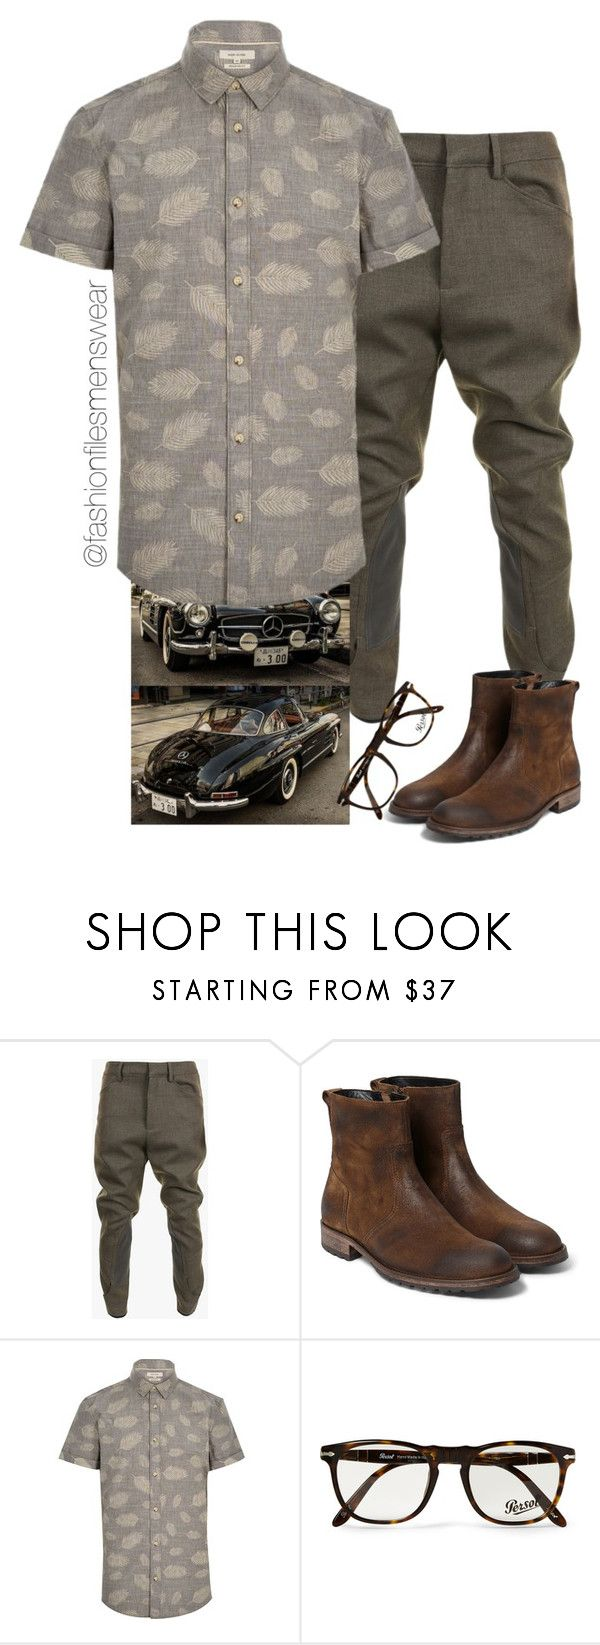 """Hipster Dude"" by highfashionfiles ❤ liked on Polyvore featuring Balmain, Belstaff, River Island and Persol"